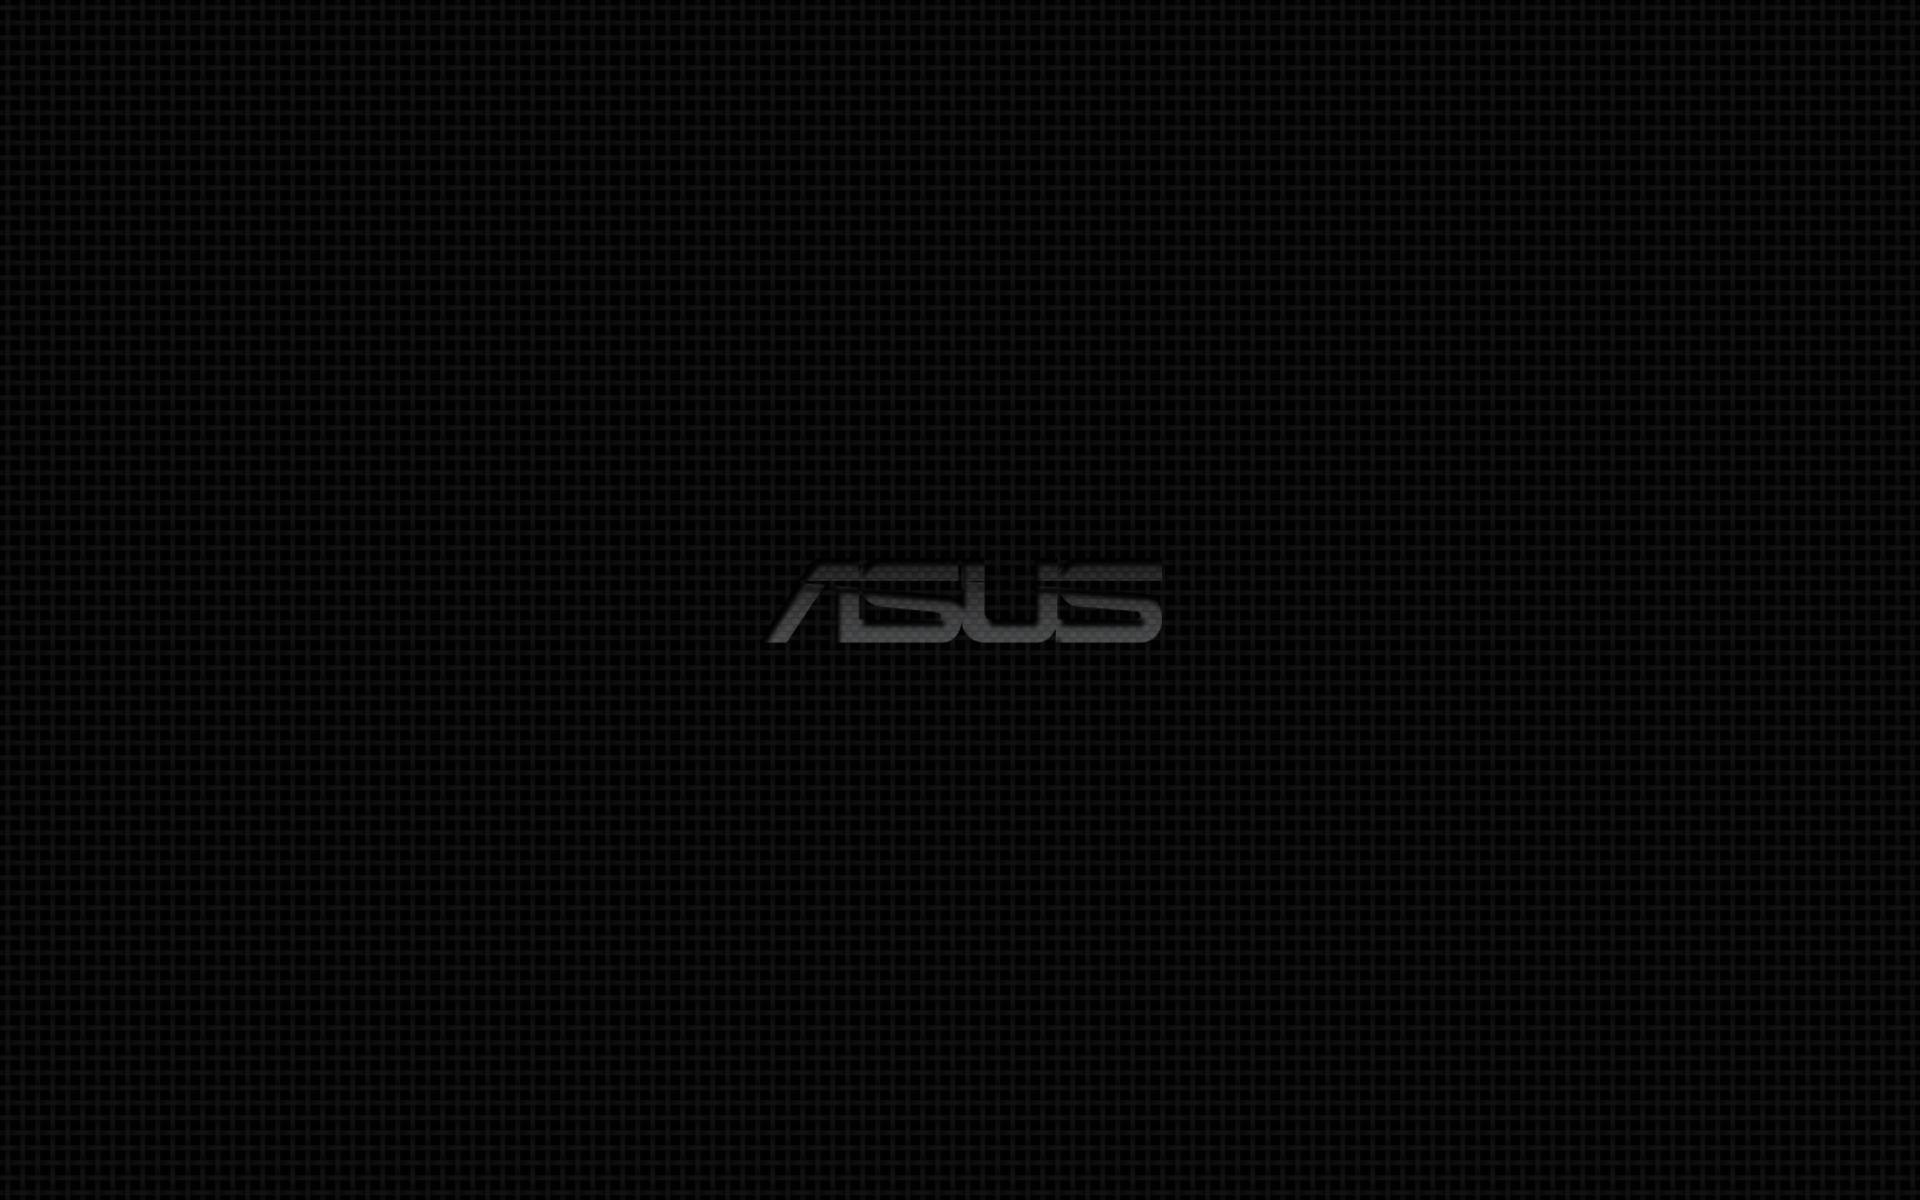 44 Asus Wallpaper Full Hd On Wallpapersafari